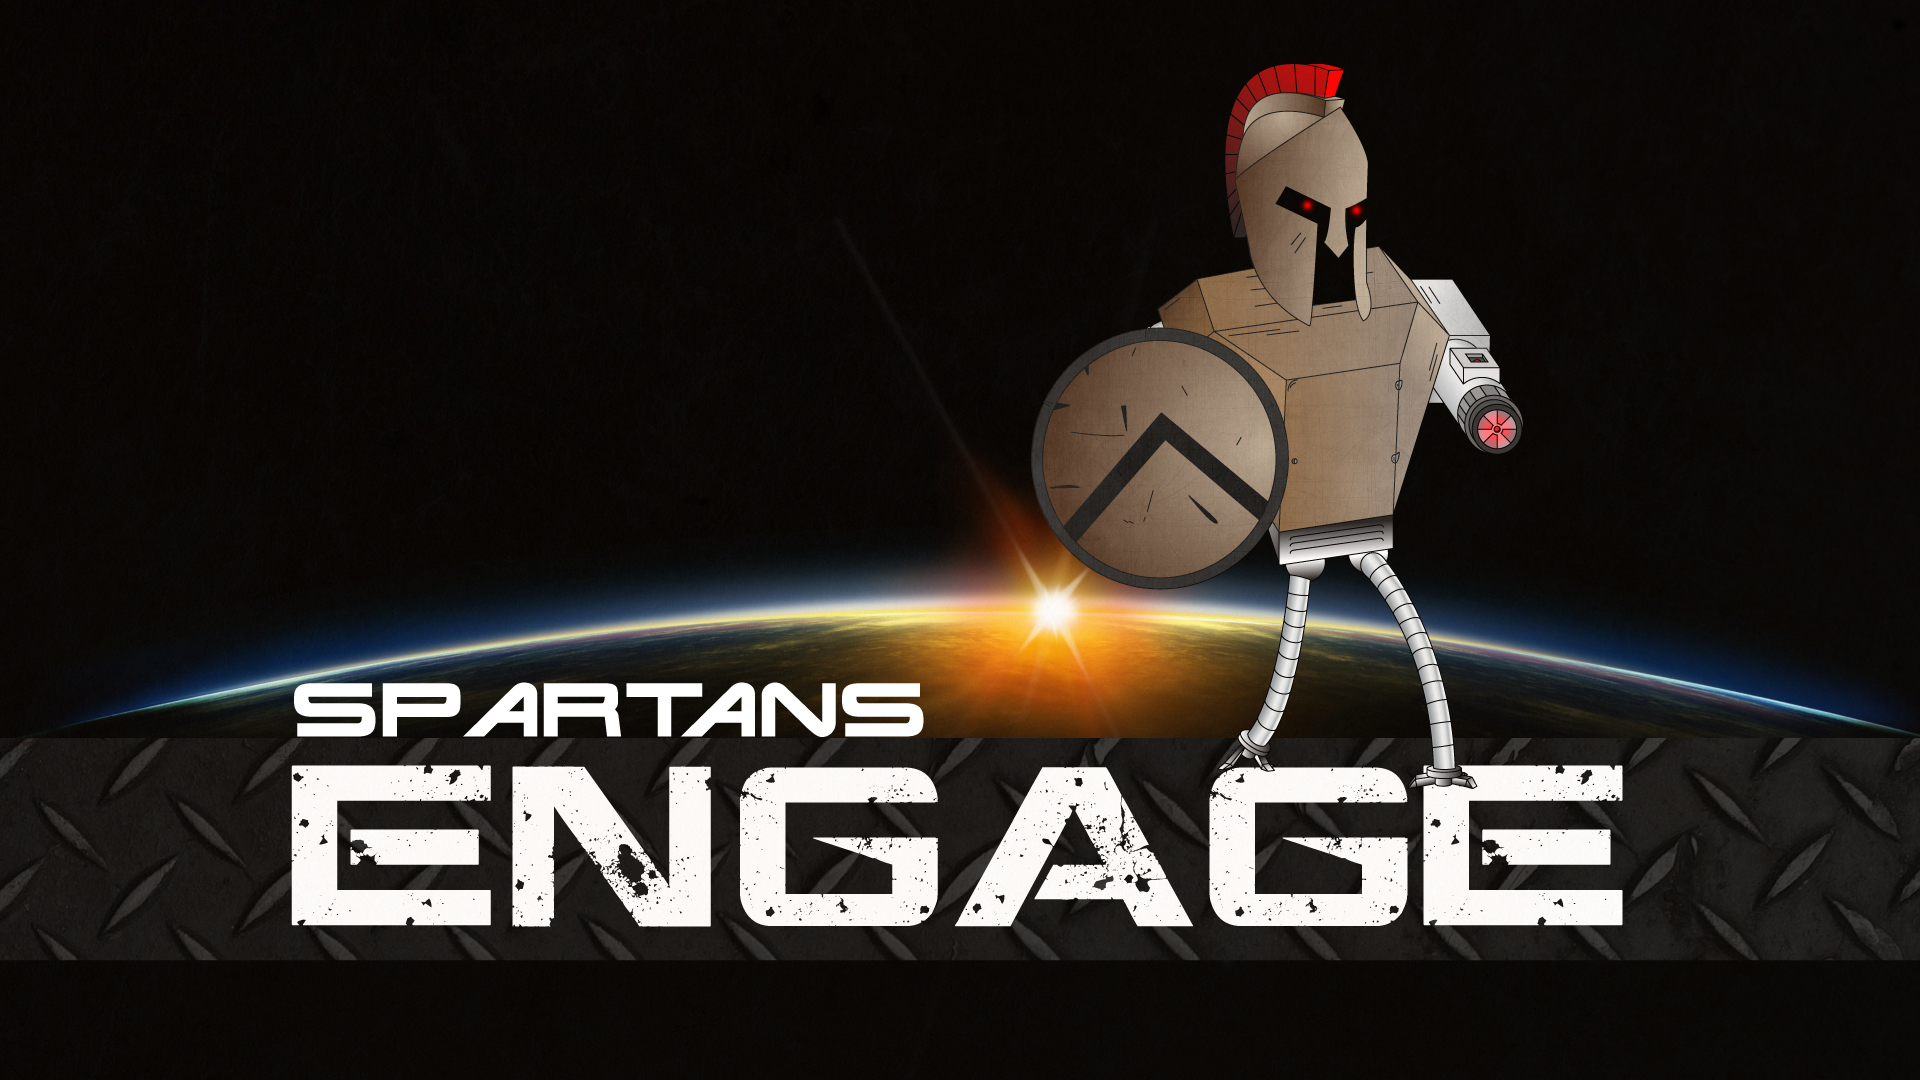 engage ing The one HD Wallpaper